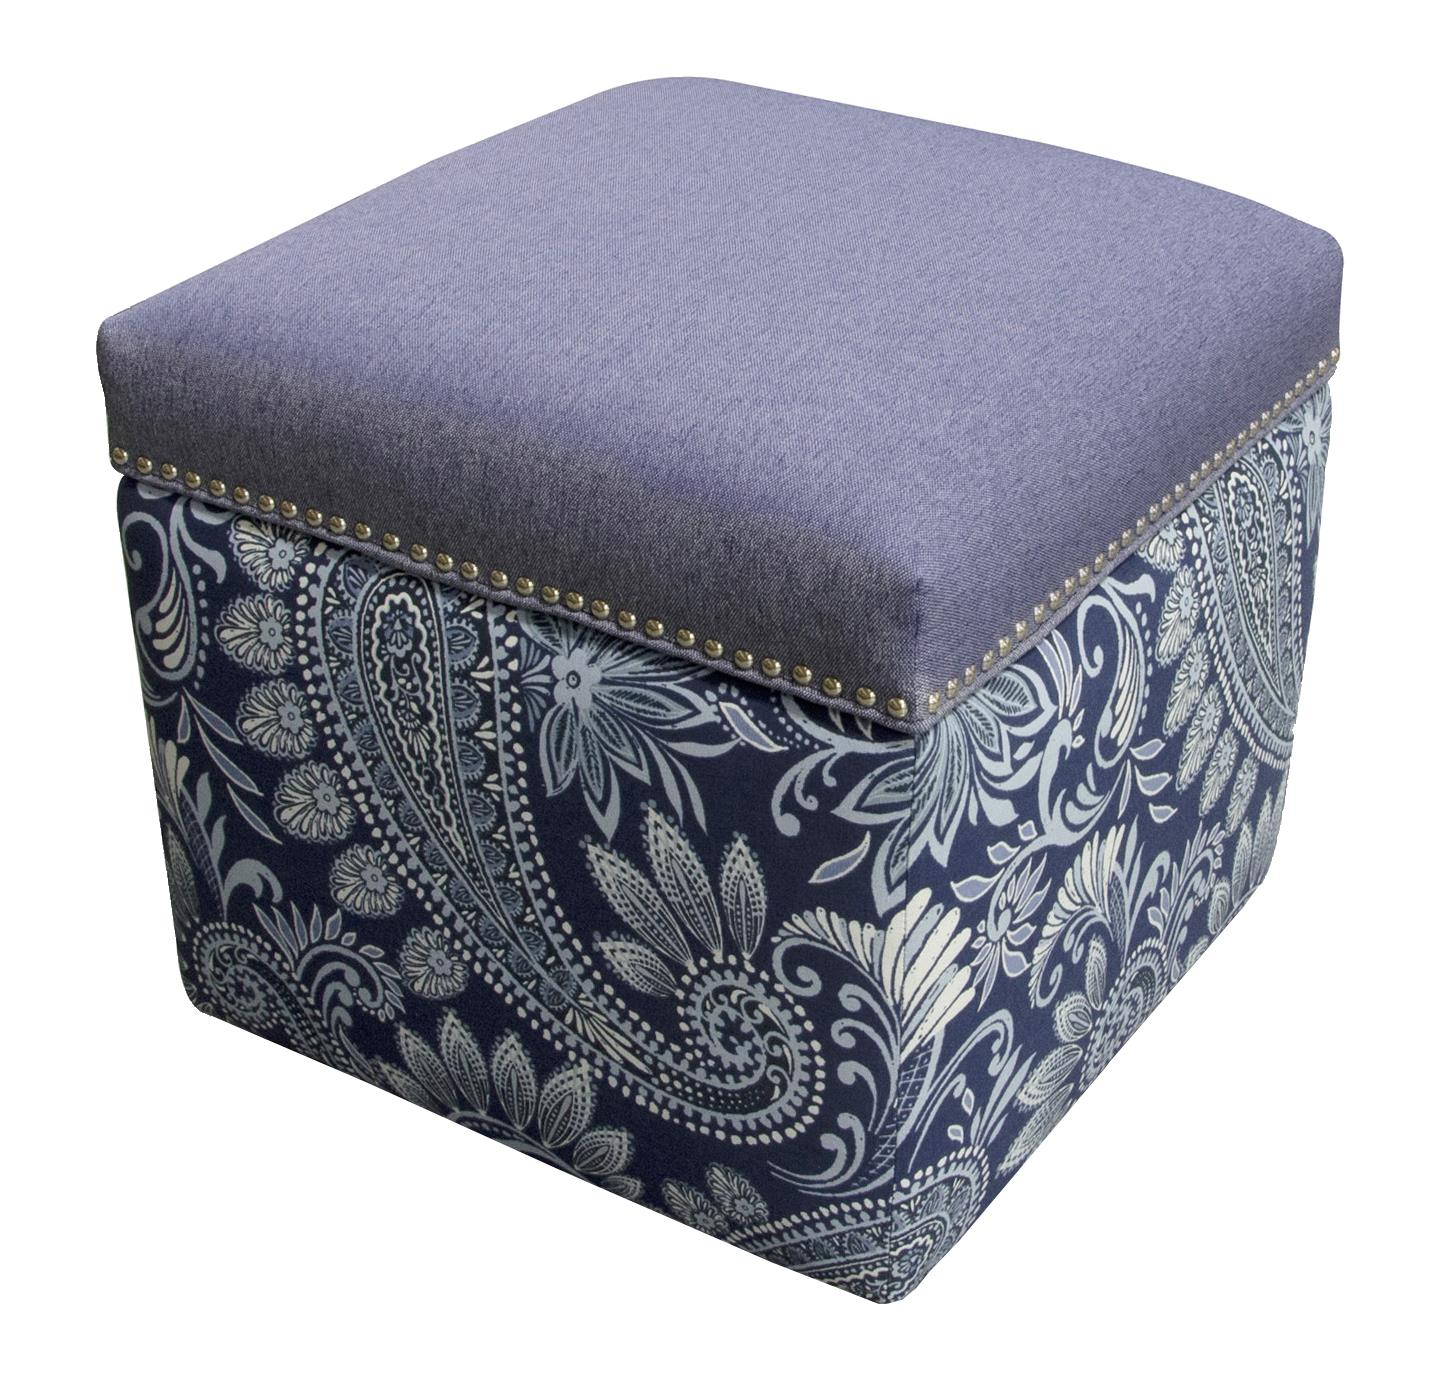 England Parson Storage Ottoman with Nailhead Trim - Item Number: 2F0081N-7357